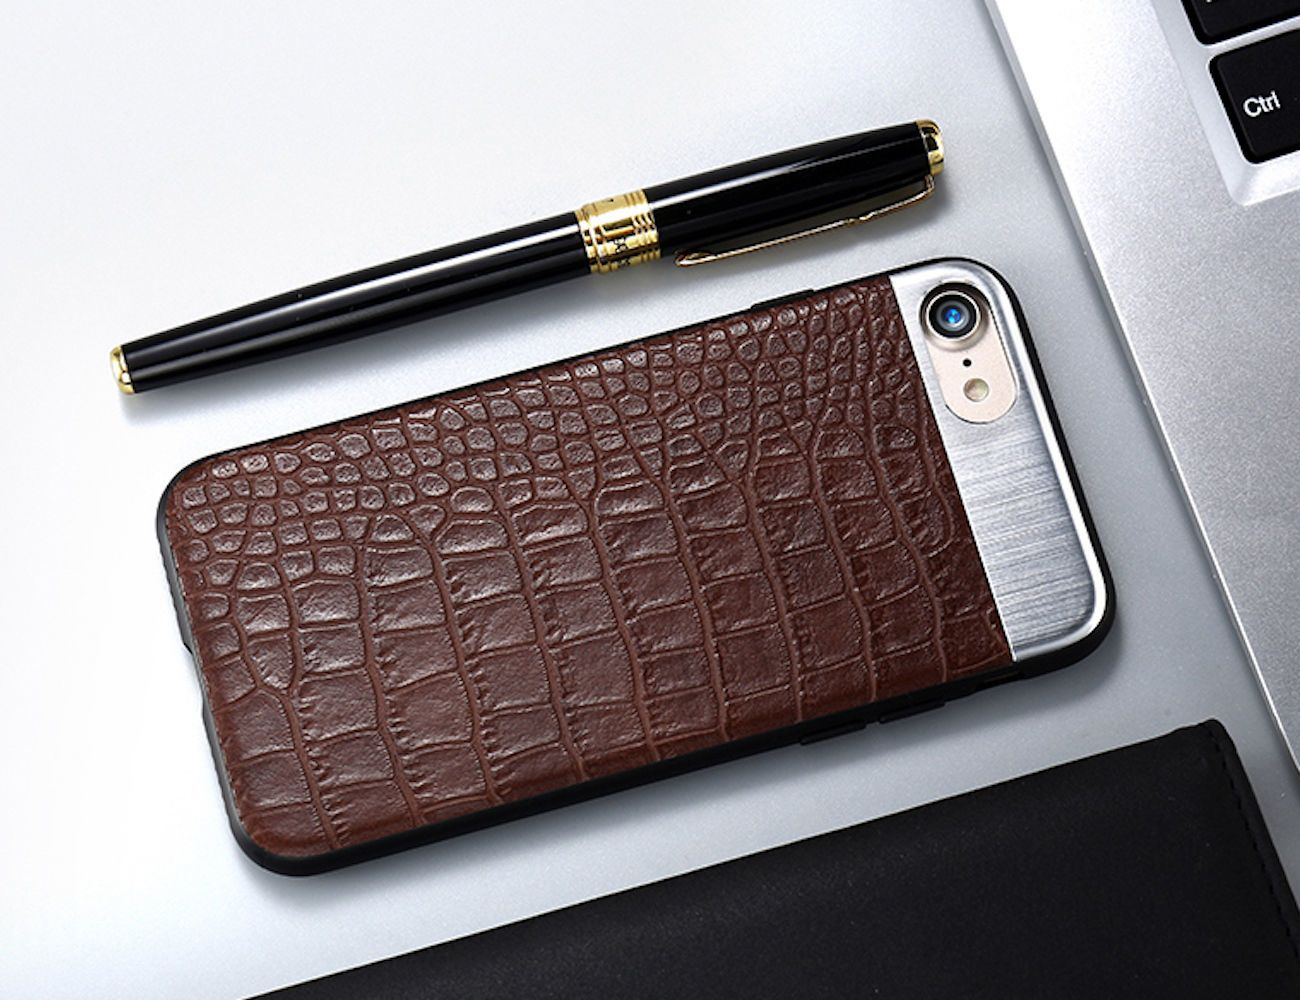 Metal+%2B+Leather+IPhone+7+Back+Cover